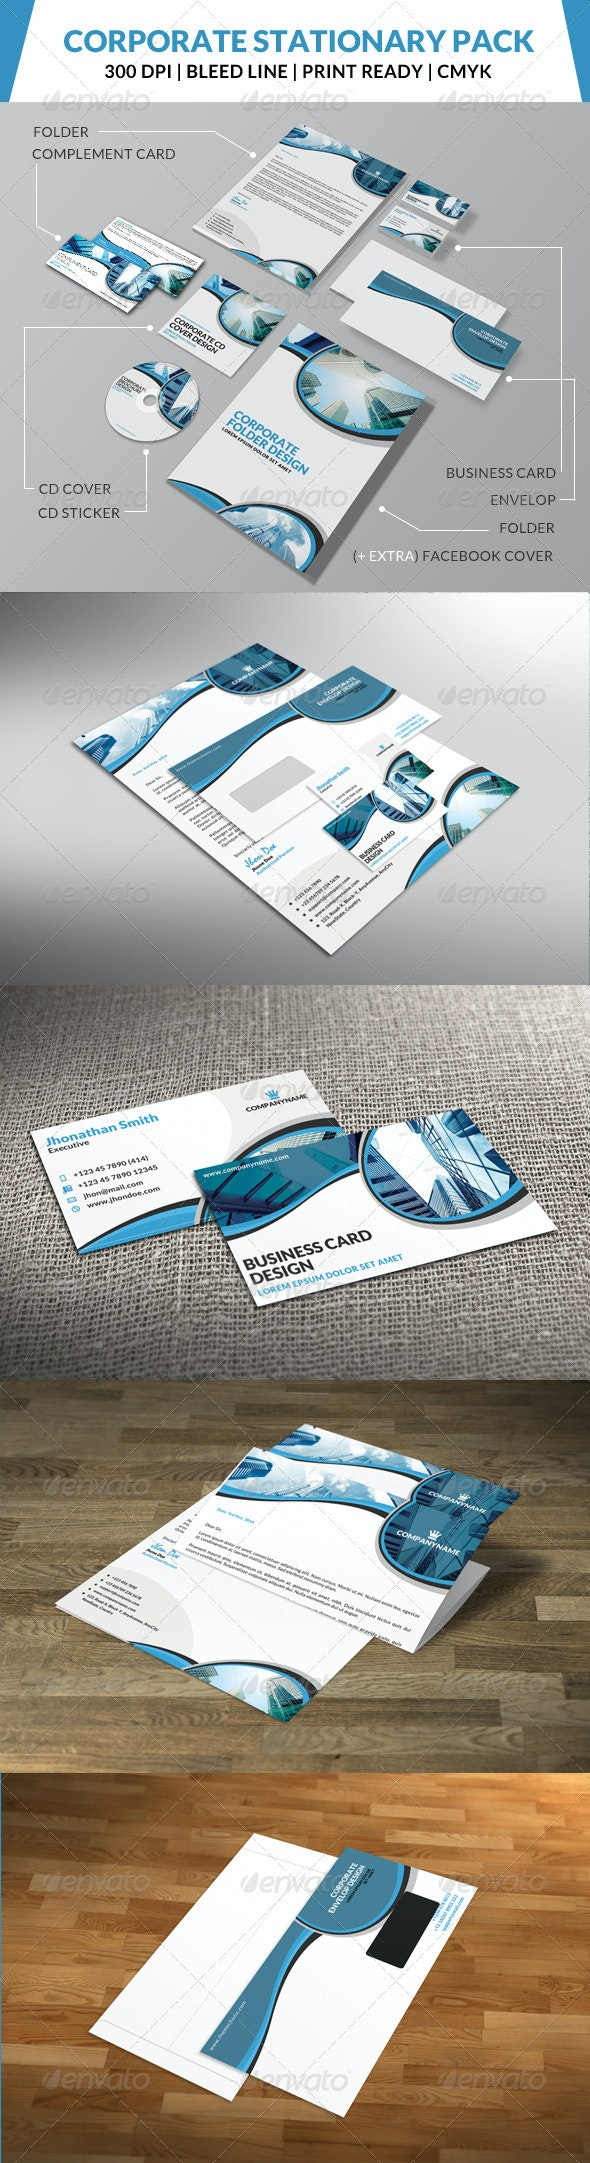 Corporate Stationary Pack 4 - Stationery Print Templates